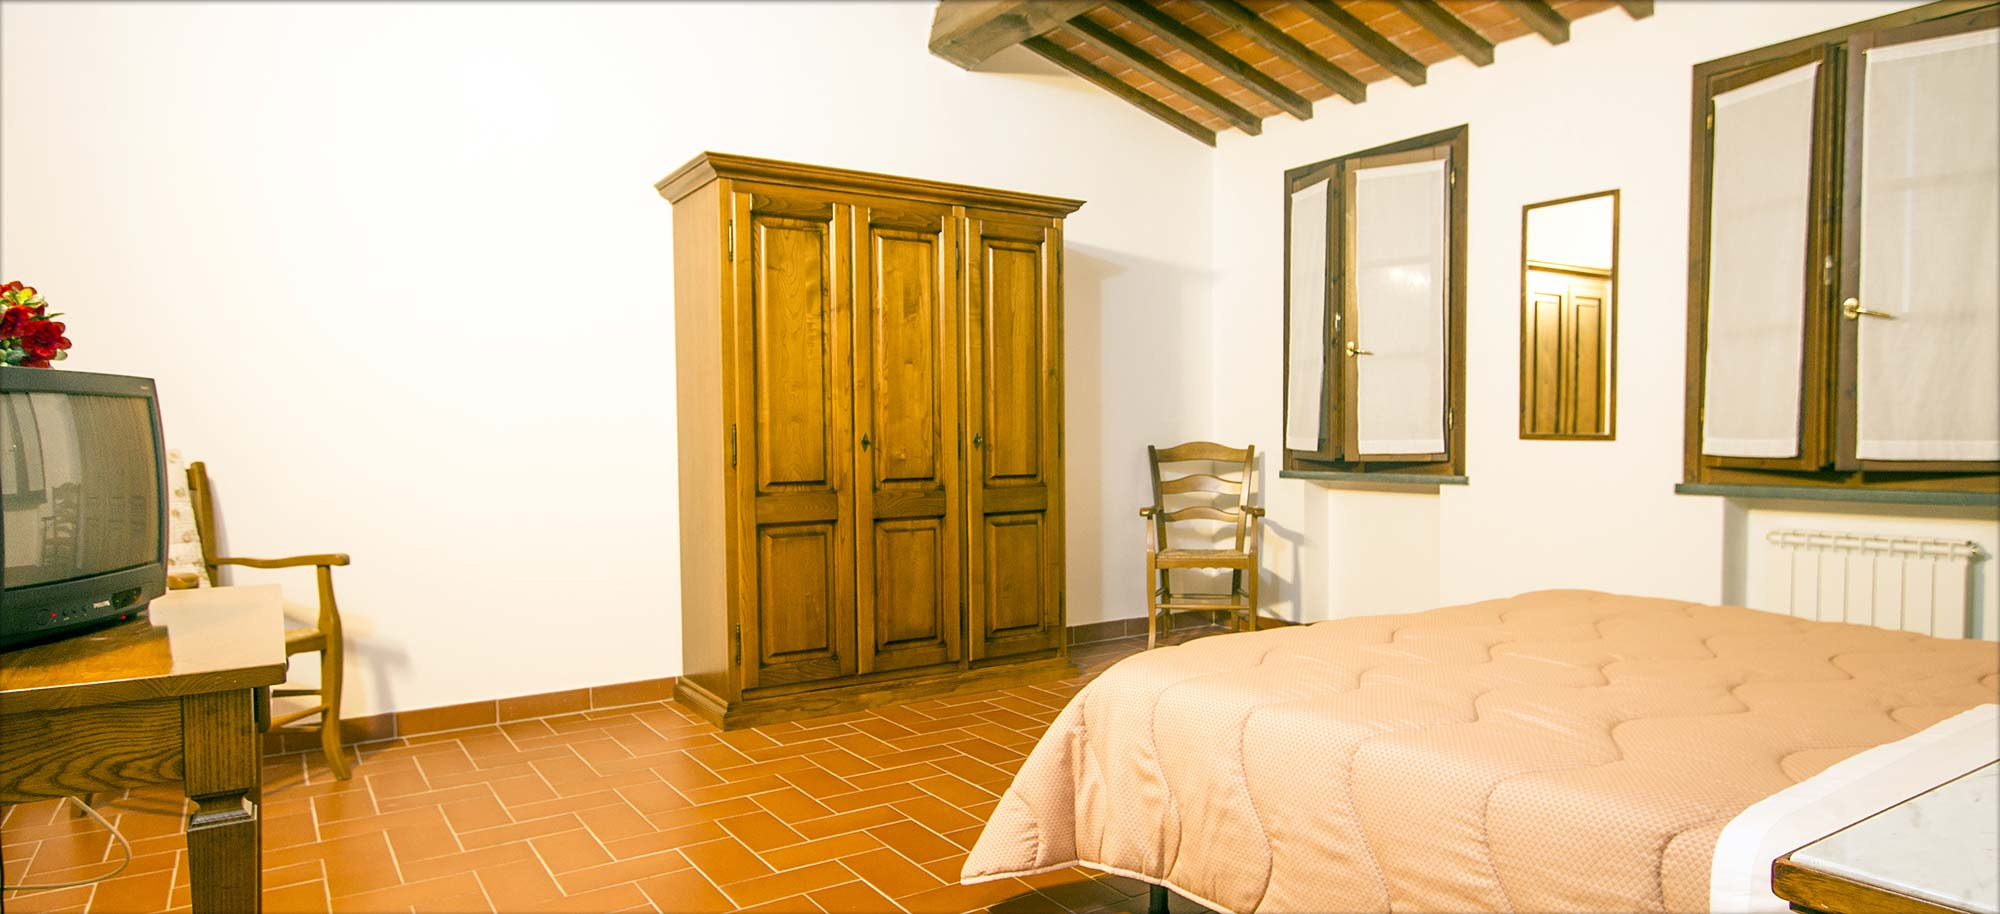 Corte Tommasi - Holiday apartments in Tuscany - 101 - Tuscany apartment with swimming pool